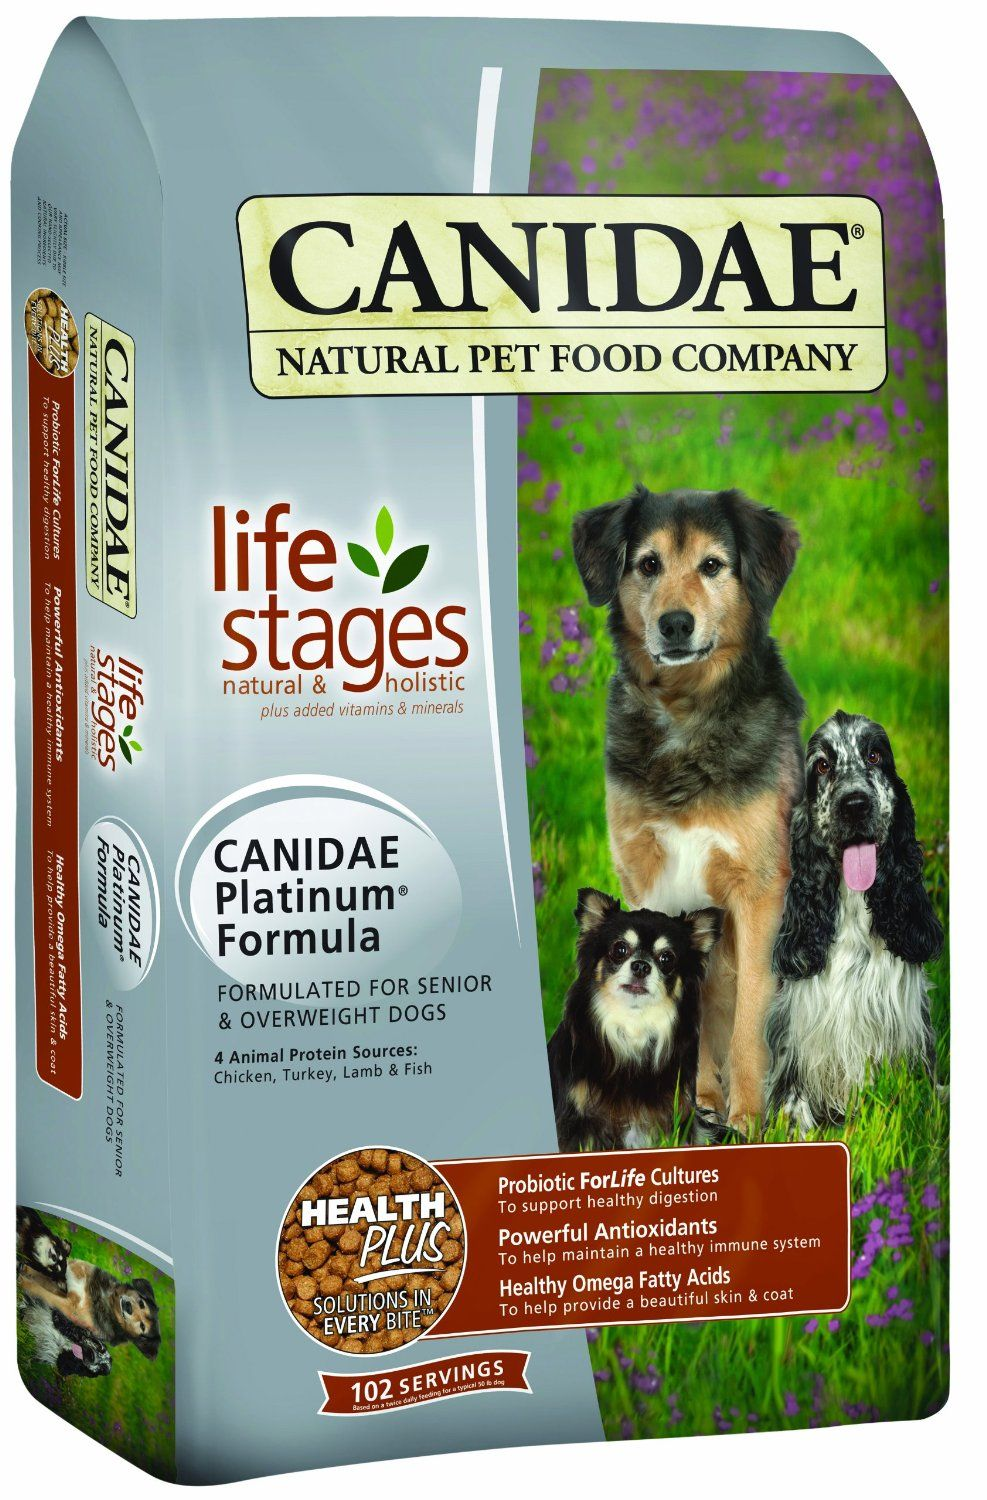 1 Canidae Life Stages Dry Dog Food For Puppies Adults Seniors